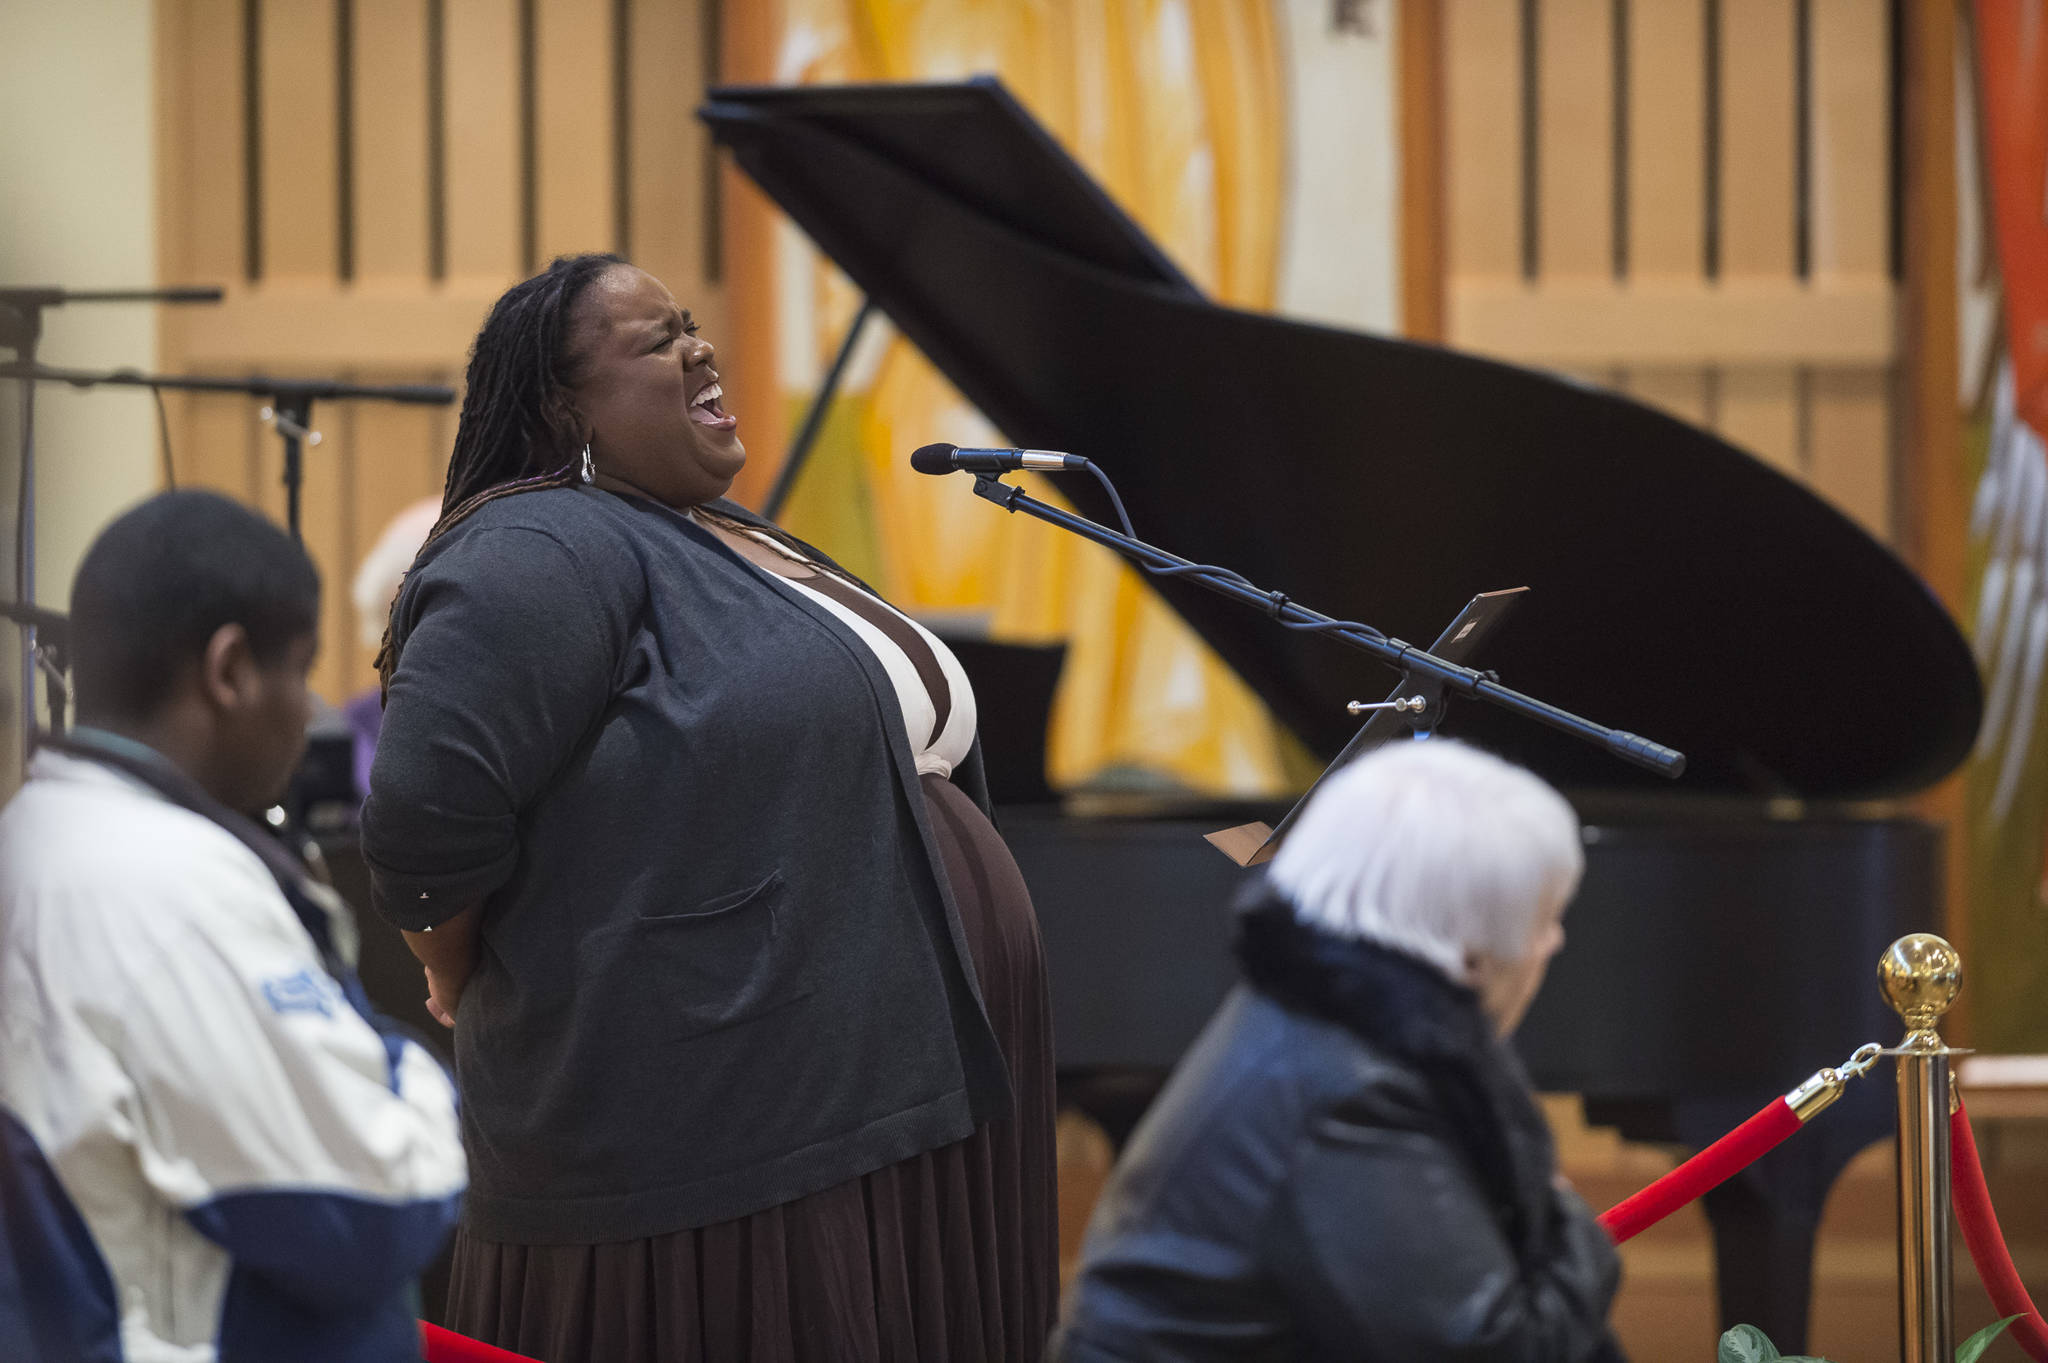 Jocelyn Miles sings the National Anthem at the Dr. Martin Luther King Jr. 2019 Community Celebration at St. Paul's Catholic Church on Monday, Jan. 21, 2019. (Michael Penn | Juneau Empire)